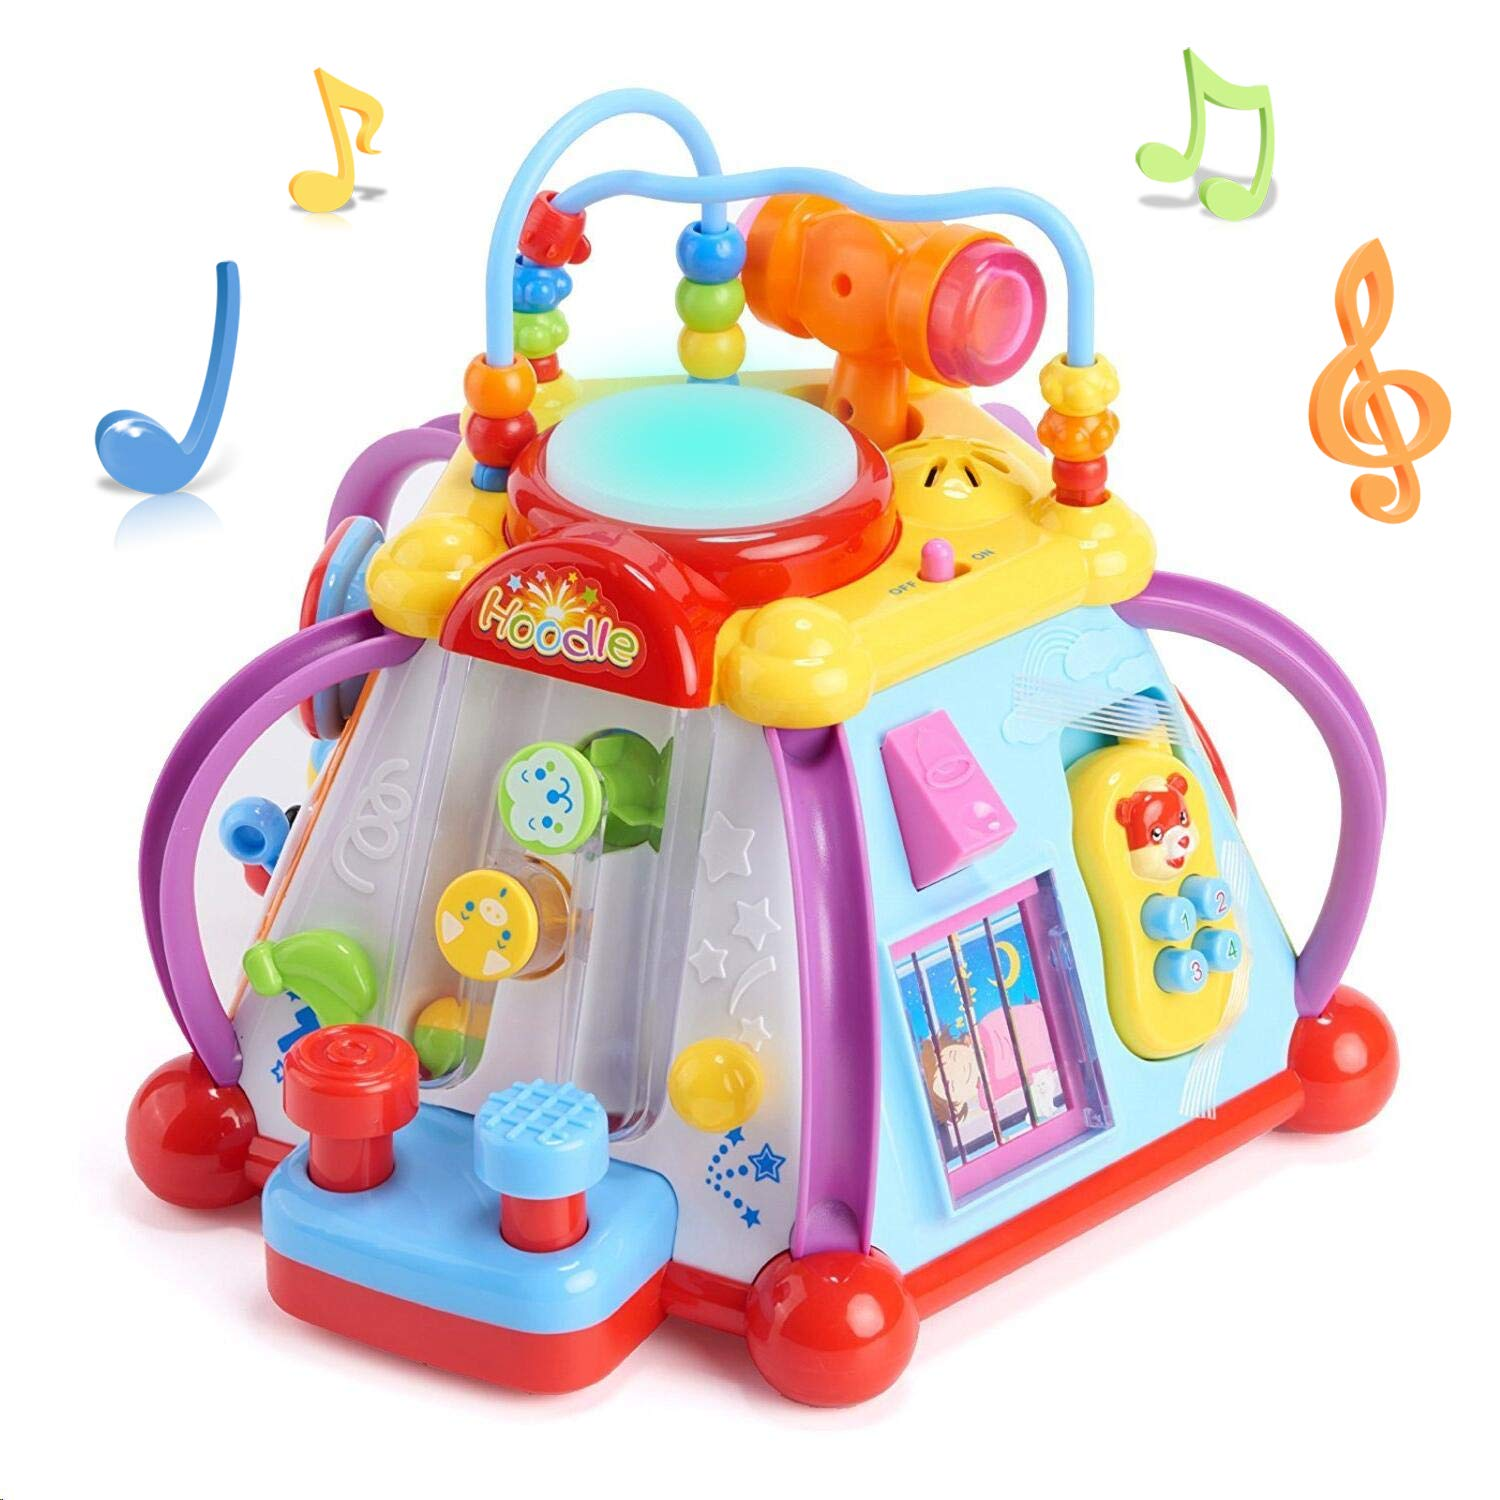 3baed5b64a4 Amazon.com: Woby Musical Activity Cube Toy Development Educational Game Play  Learning Center Toy for 1 Year Old Baby Toddler Boy and Girl: Toys & Games